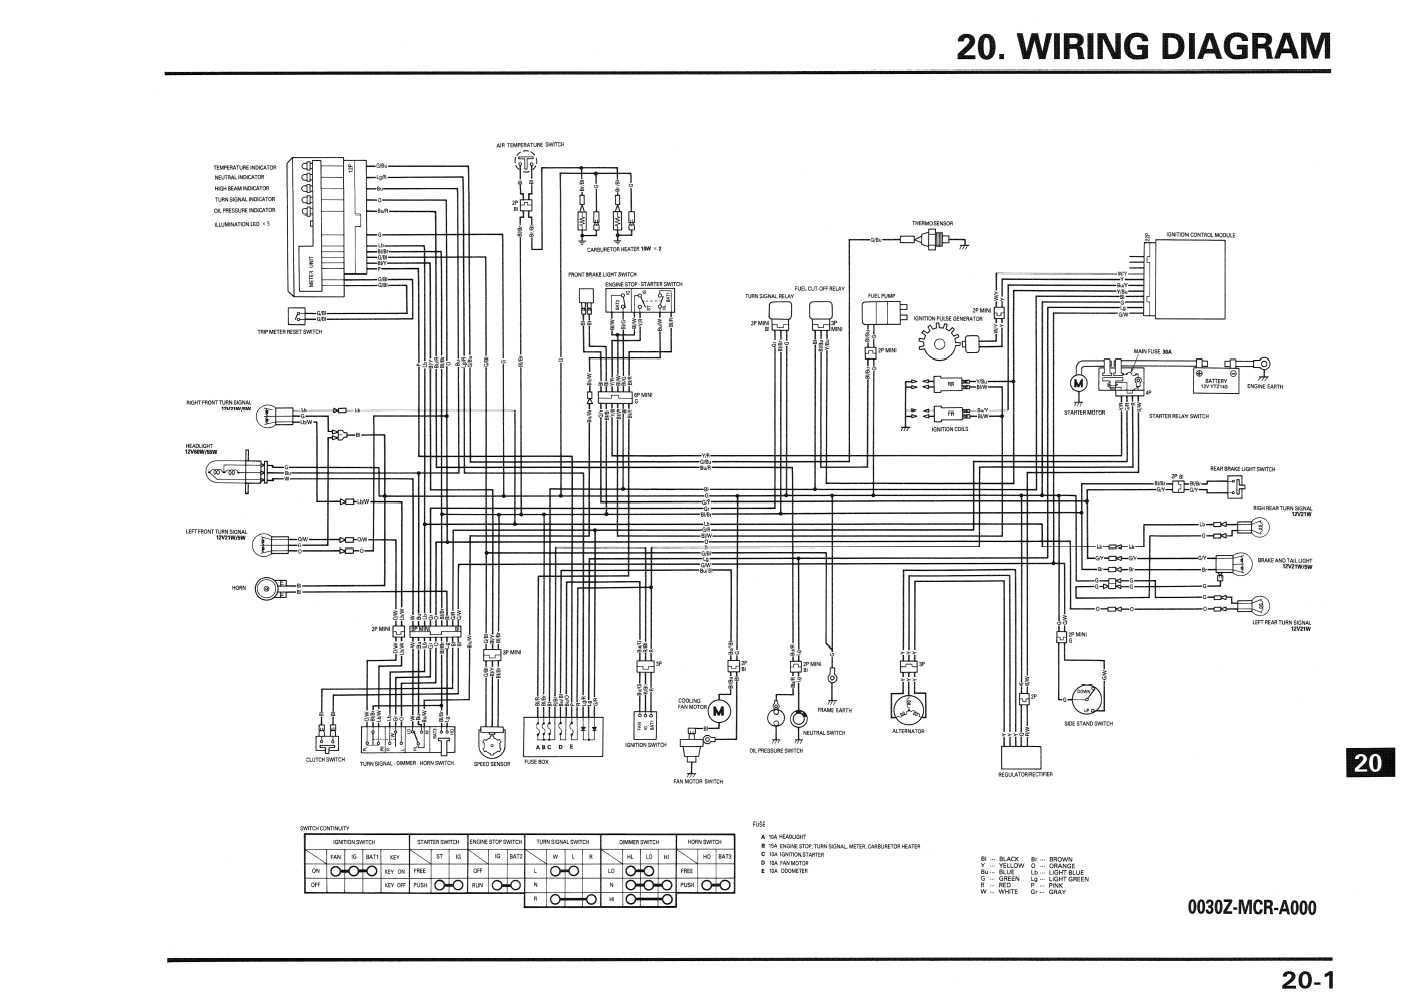 61mcr02_348_1 honda vt750dc shop manual wiring diagram 1983 honda shadow 750 wiring diagram at edmiracle.co